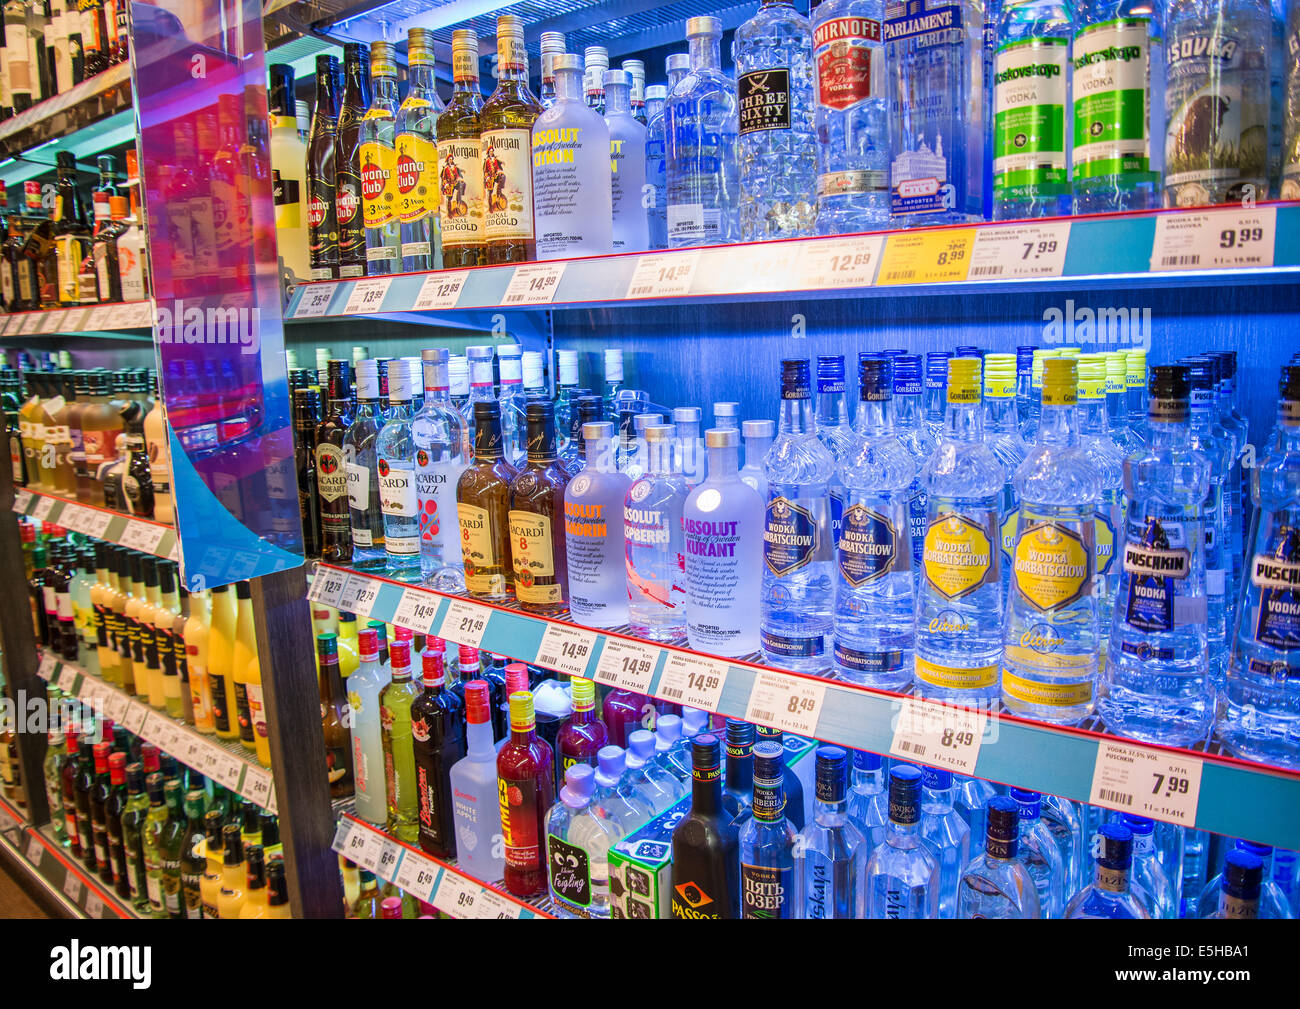 Shelf with a large selection of spirits in the supermarket. Stock Photo